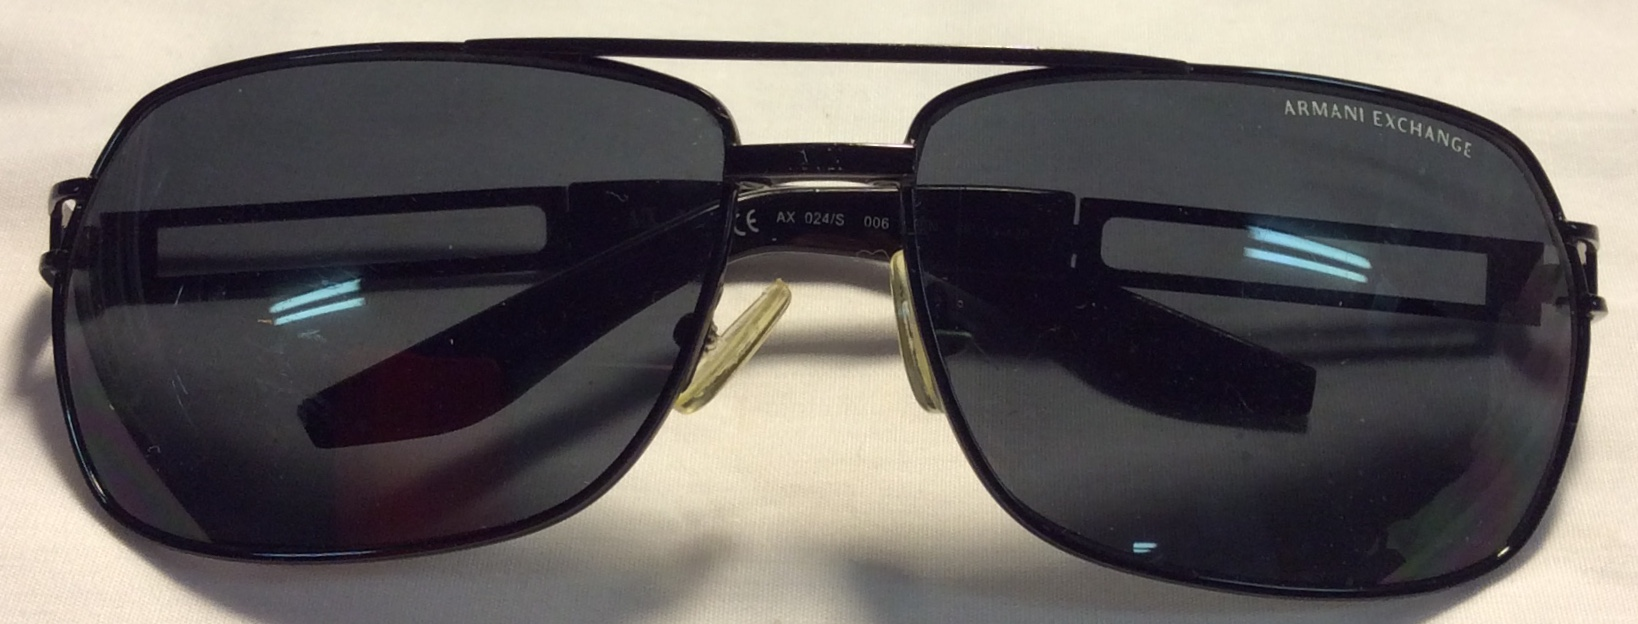 Armani Exchange Black metal frames